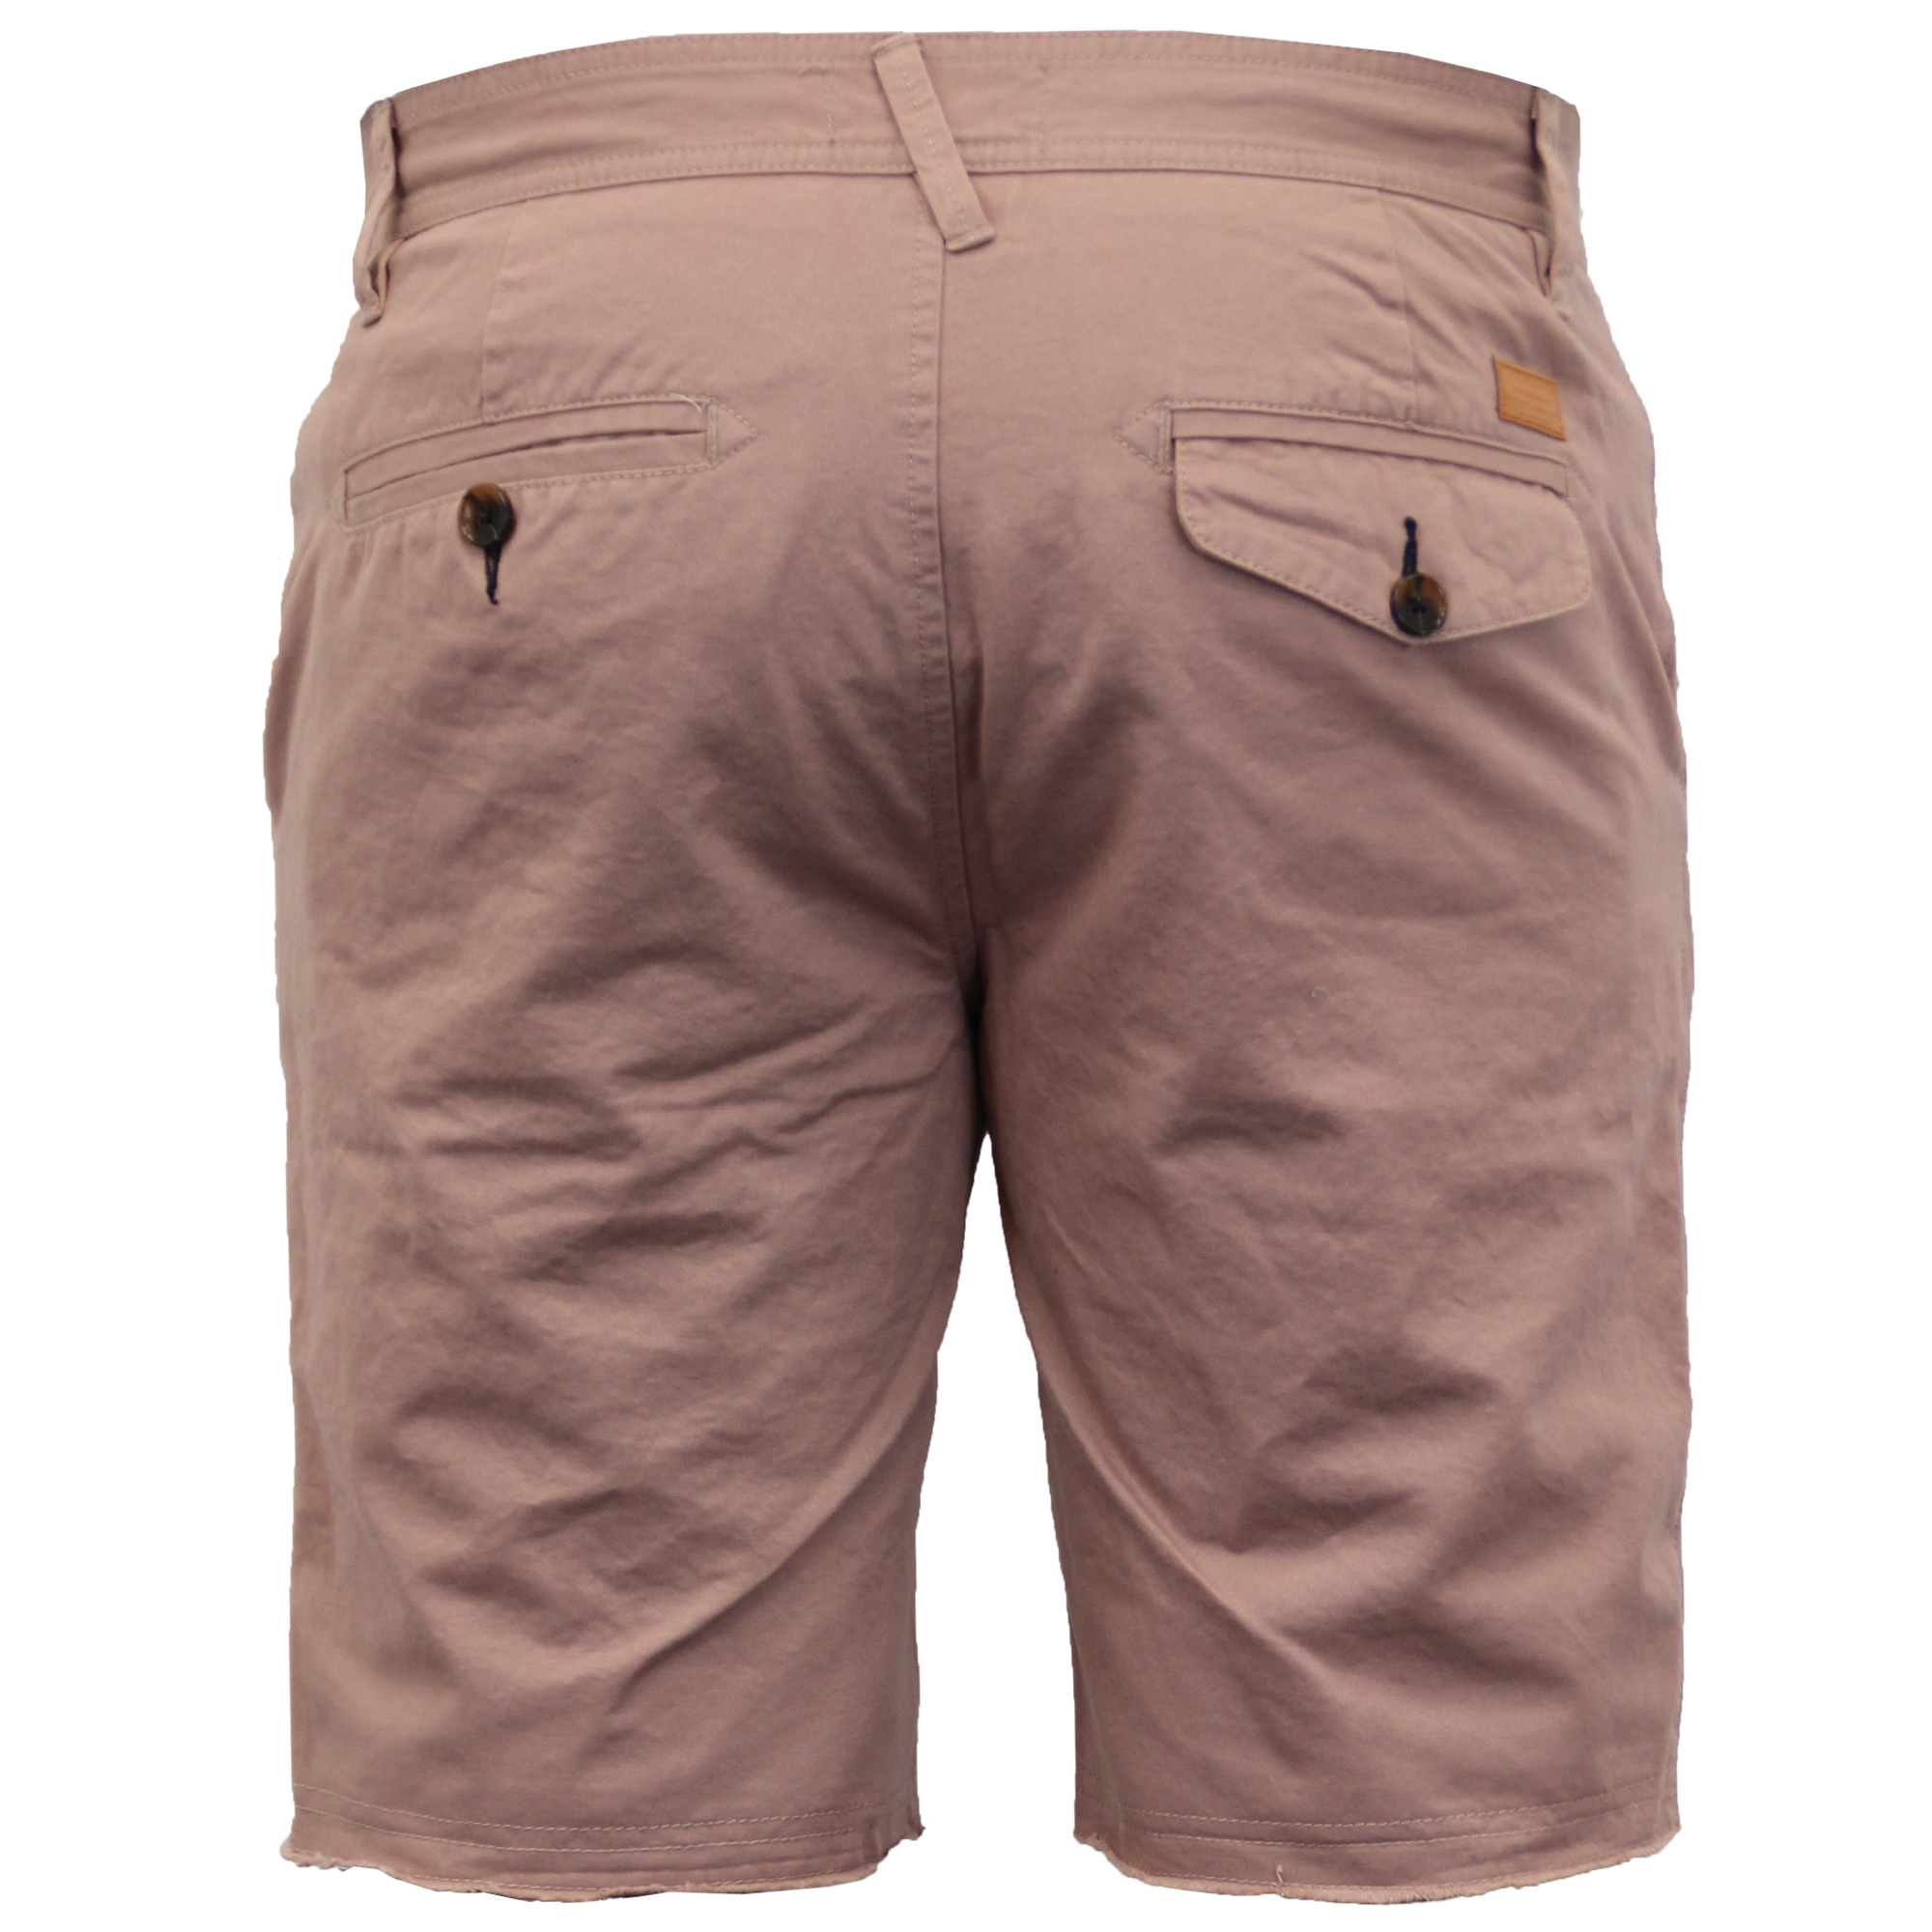 Mens-Chino-Shorts-Threadbare-Pants-Westace-Stallion-Knee-Length-Roll-Up-Summer thumbnail 38